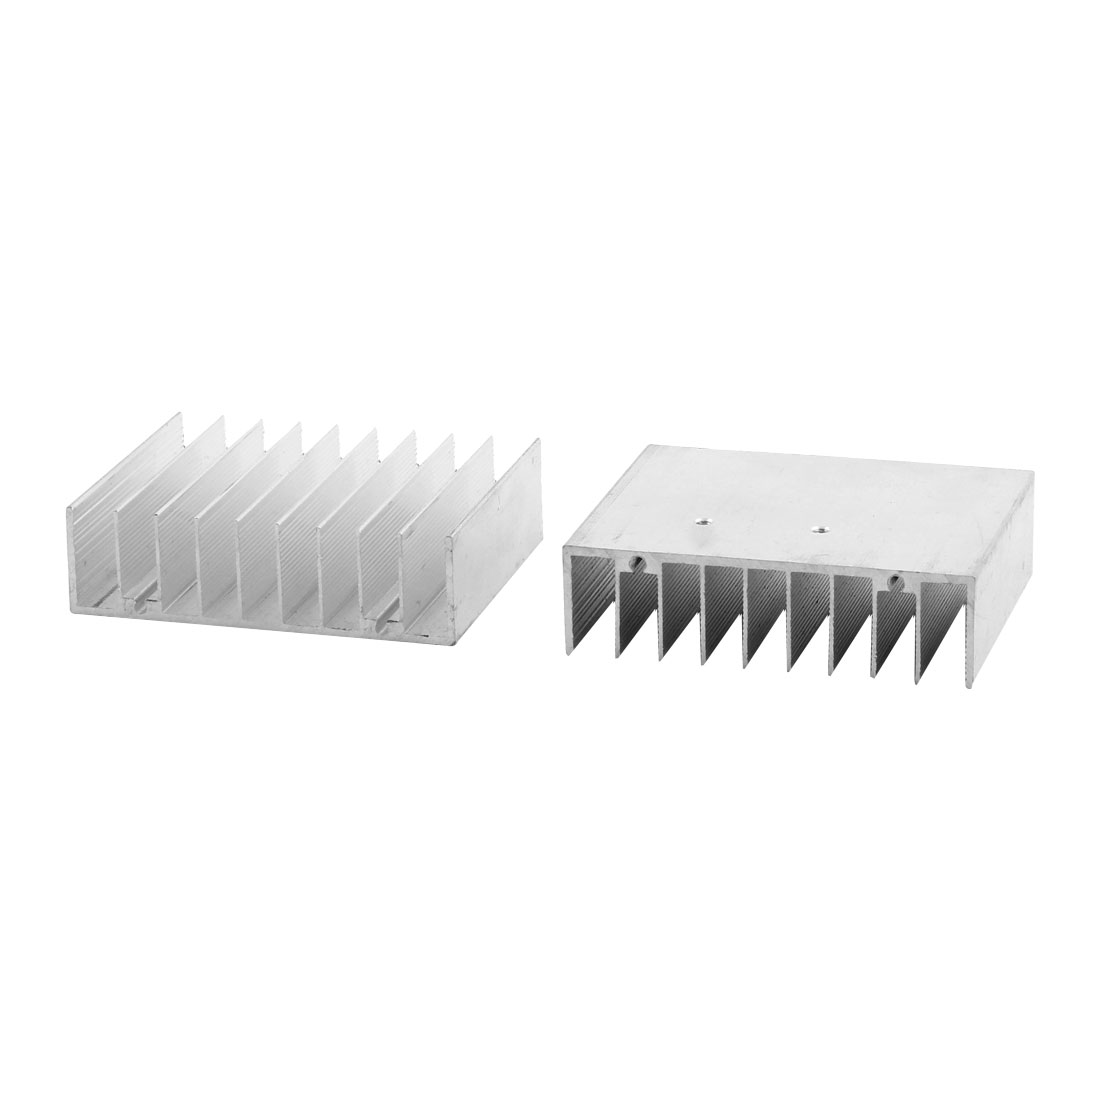 76mmx70mmx22mm Aluminum Screw Mount Heat Sink Cooling Cooler Fin Heatsink Silver Tone 2pcs